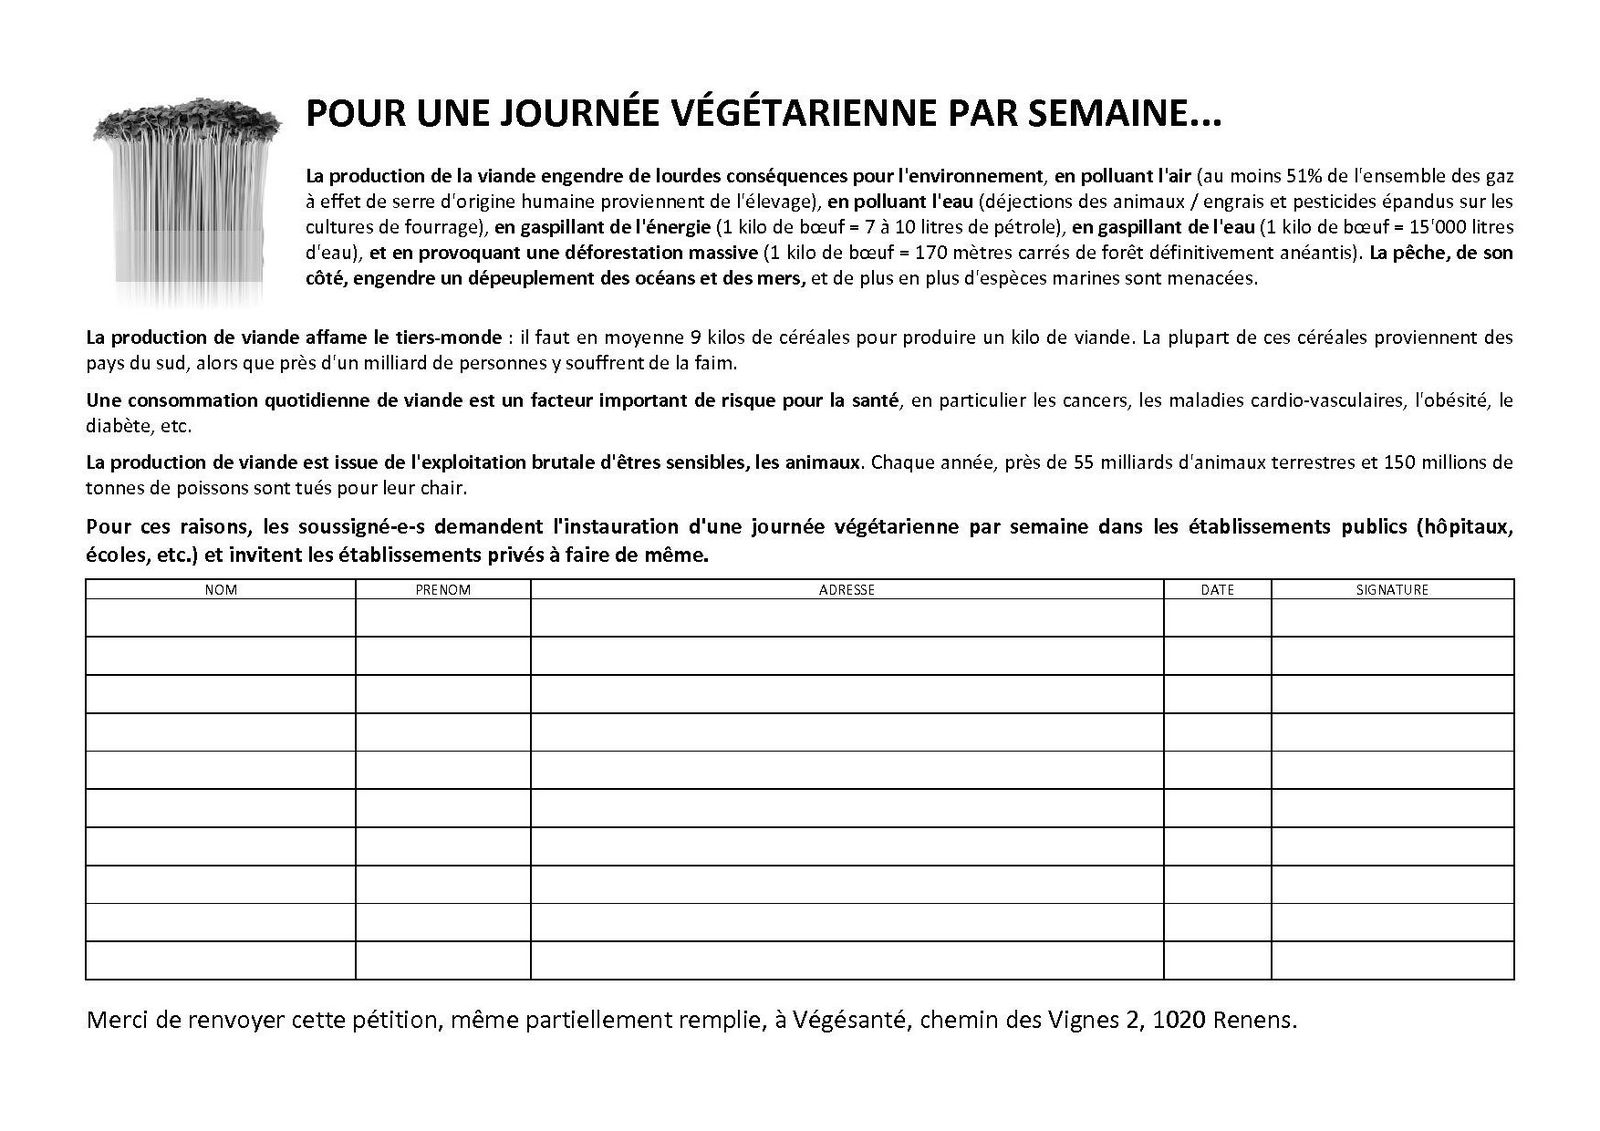 Site de rencontre vegetarien quebec